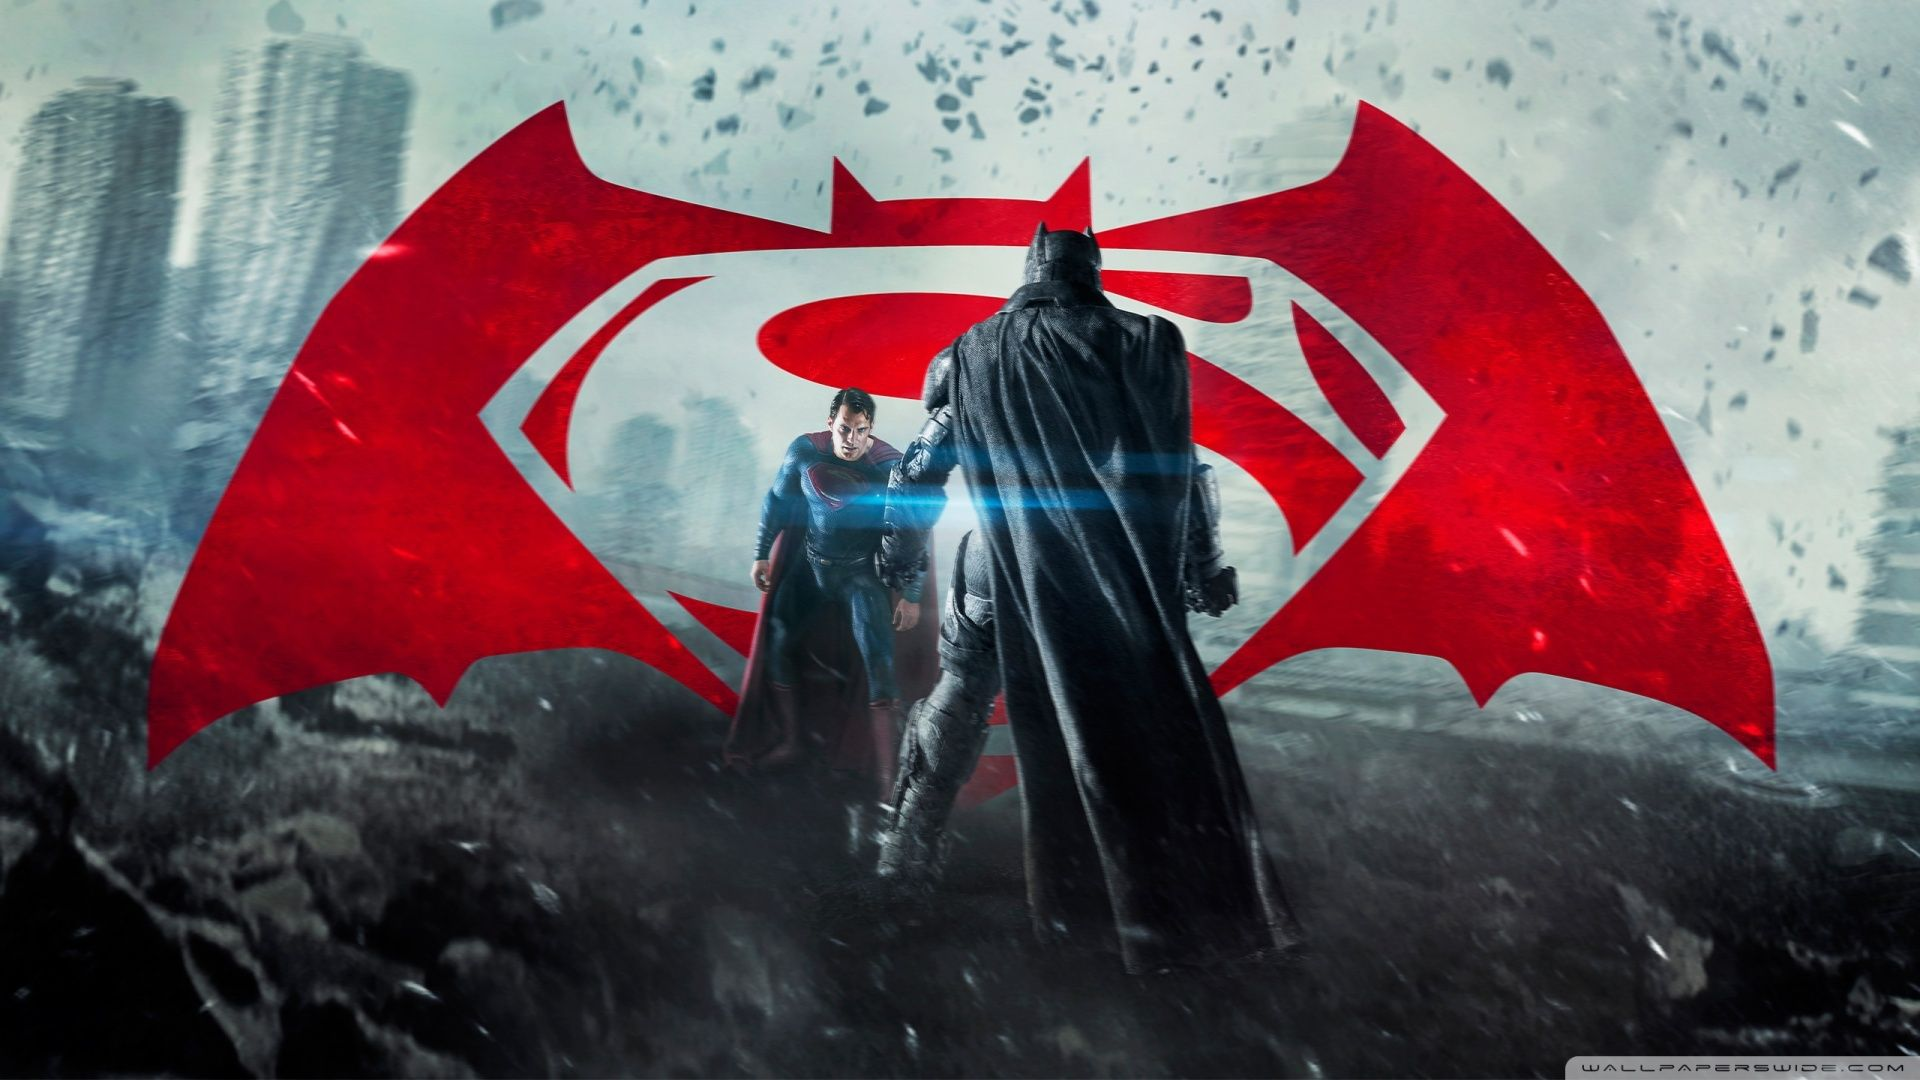 Batman V Superman Dawn Of Justice Wallpapers 1920x1080 Need IPhone 6S Plus Wallpaper Background For IPhone6SPlus